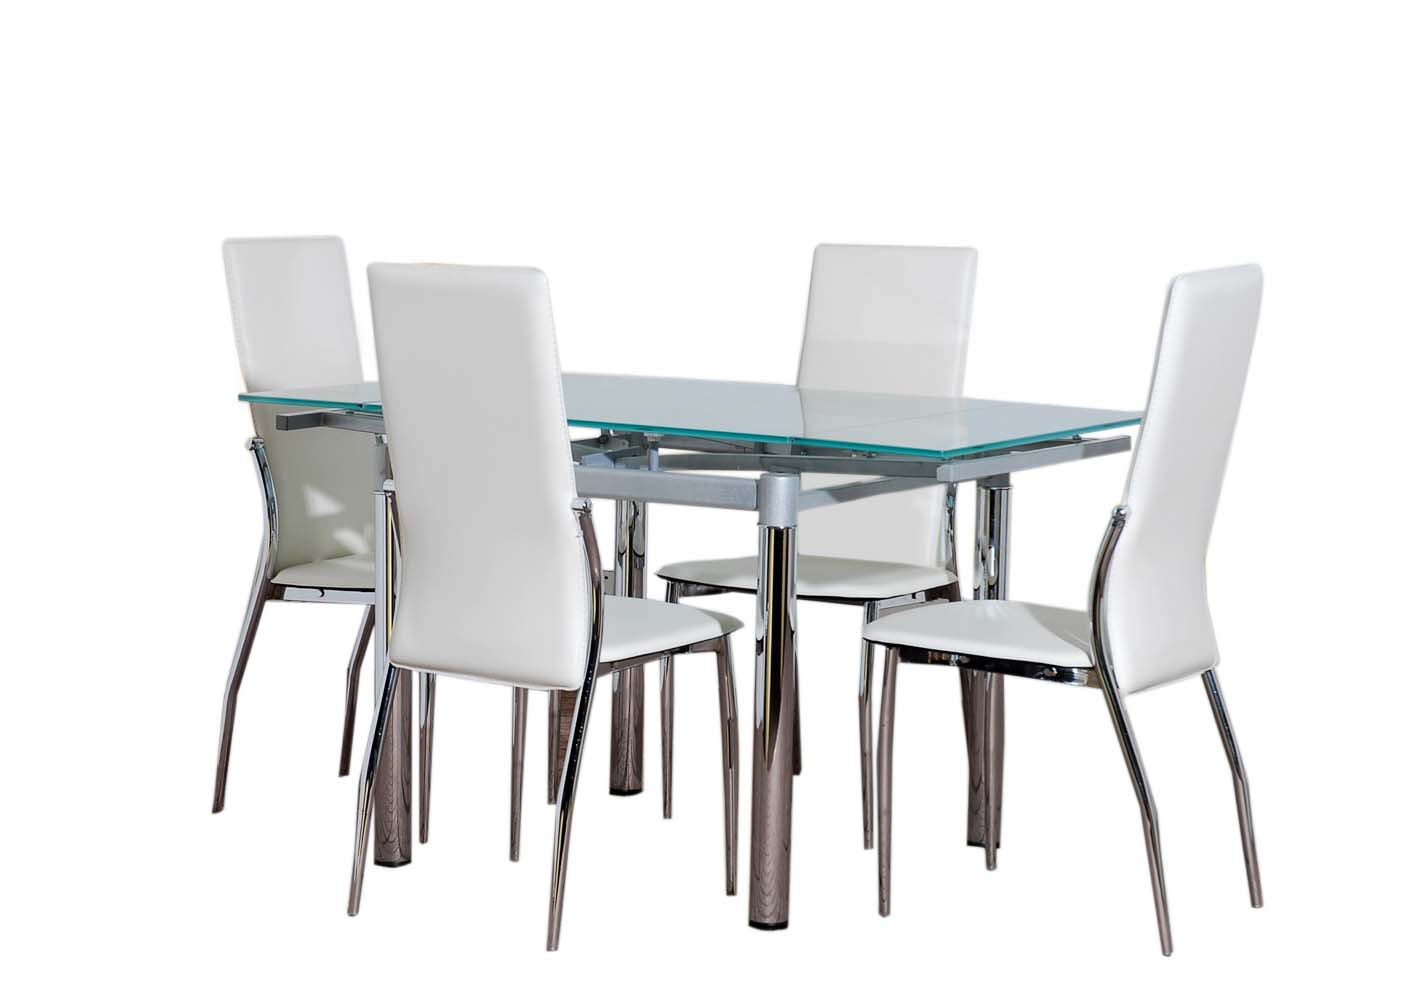 4 chair dining table kitchen table chairs set Bent 4 Seater Dining Table Set